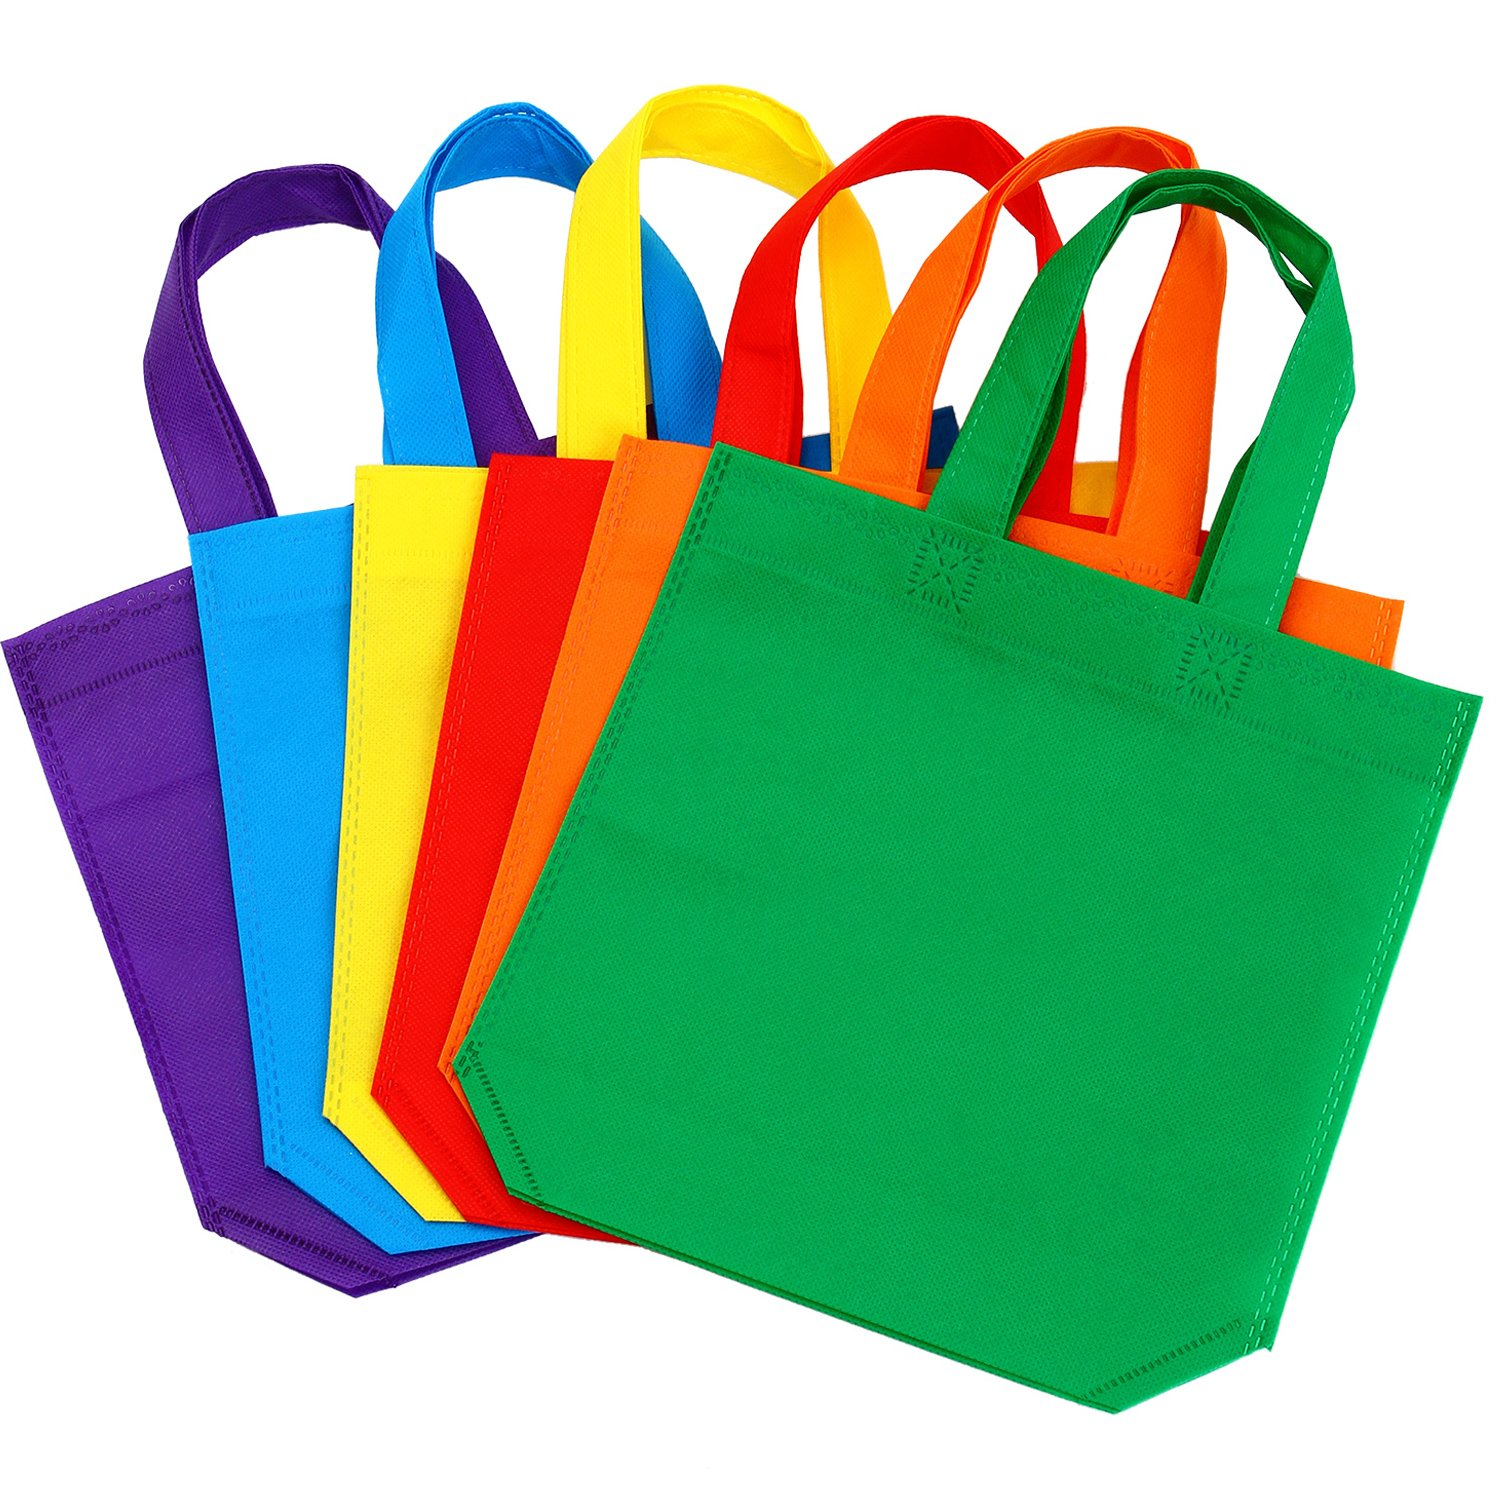 6 Colors Aneco 24 Pack 10 by 10 Inches Non-woven Tote Bags Party Goodie Treat Bag Bottom Gift Bag with Handles for Kids Birthday Party Favor